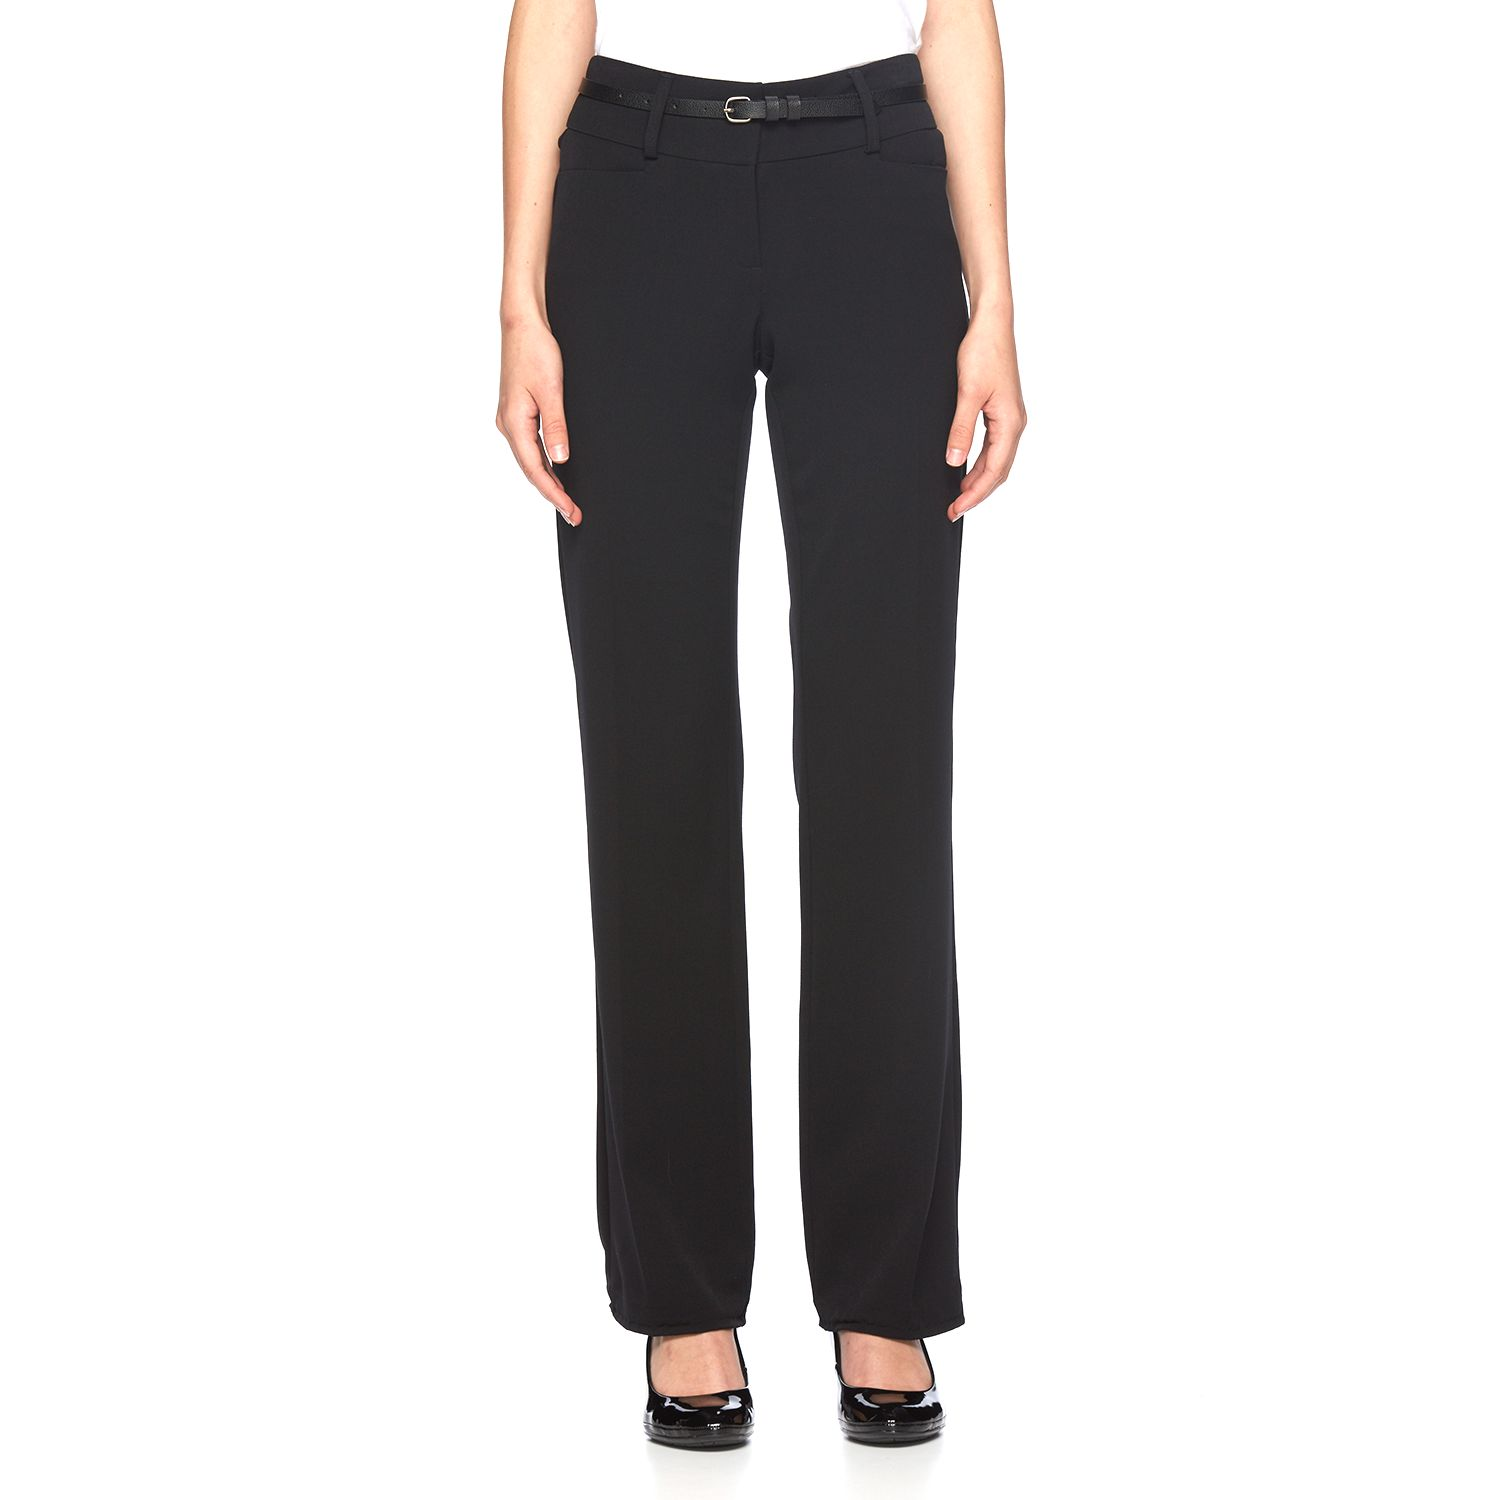 Black Dress Pants Women